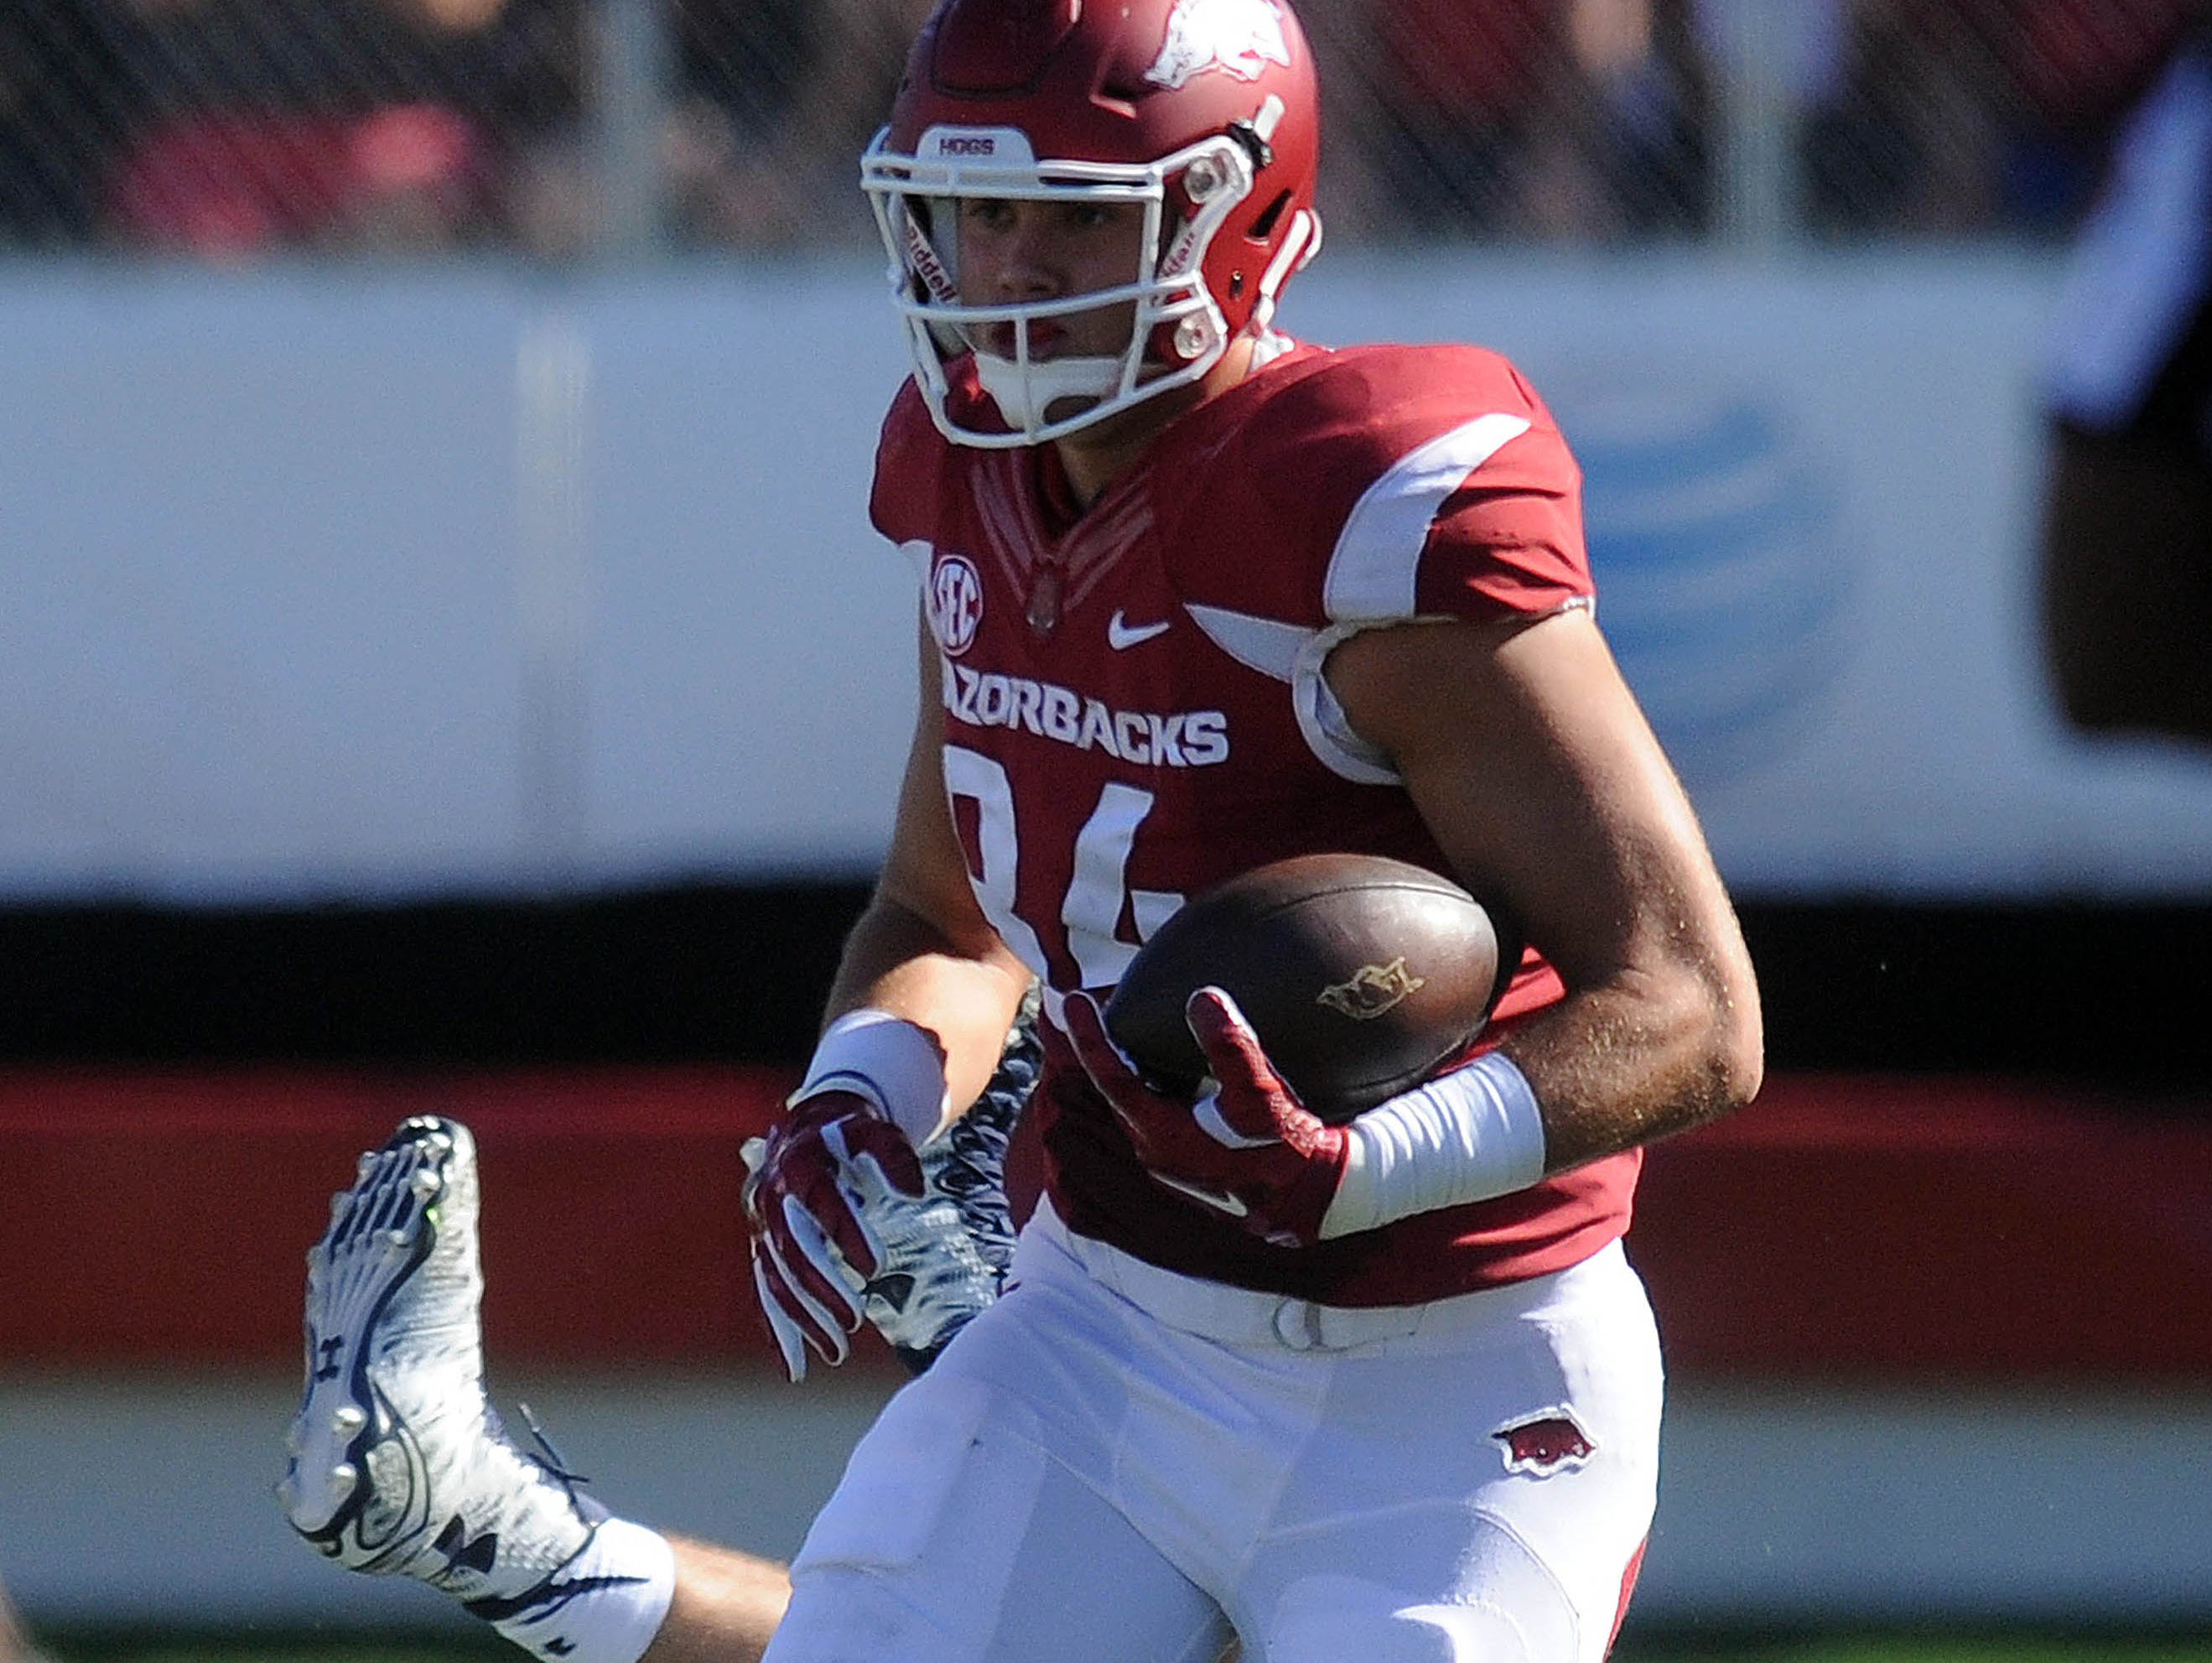 Arkansas tight end Hunter Henry (84) runs the ball after a catch against the Toledo Rockets during the second quarter at War Memorial Stadium.